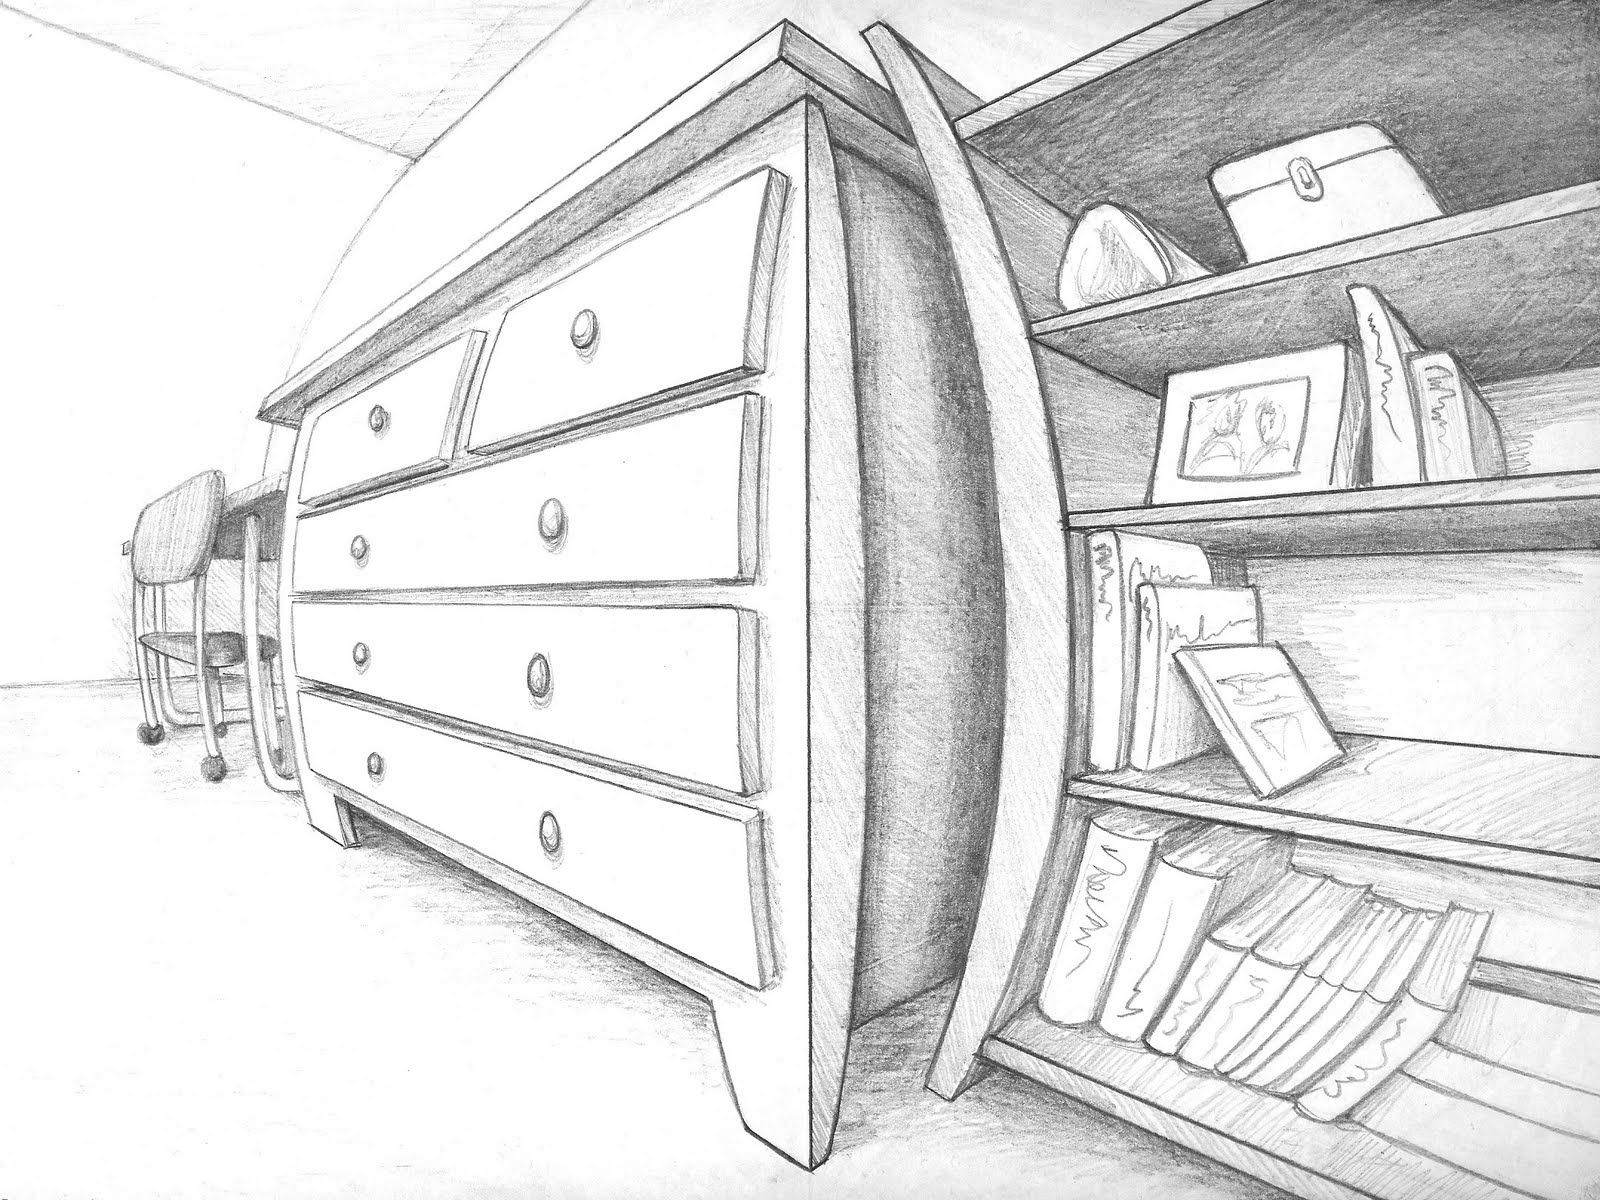 3 4 5 pt persp Four Point Perspective Art   A brief